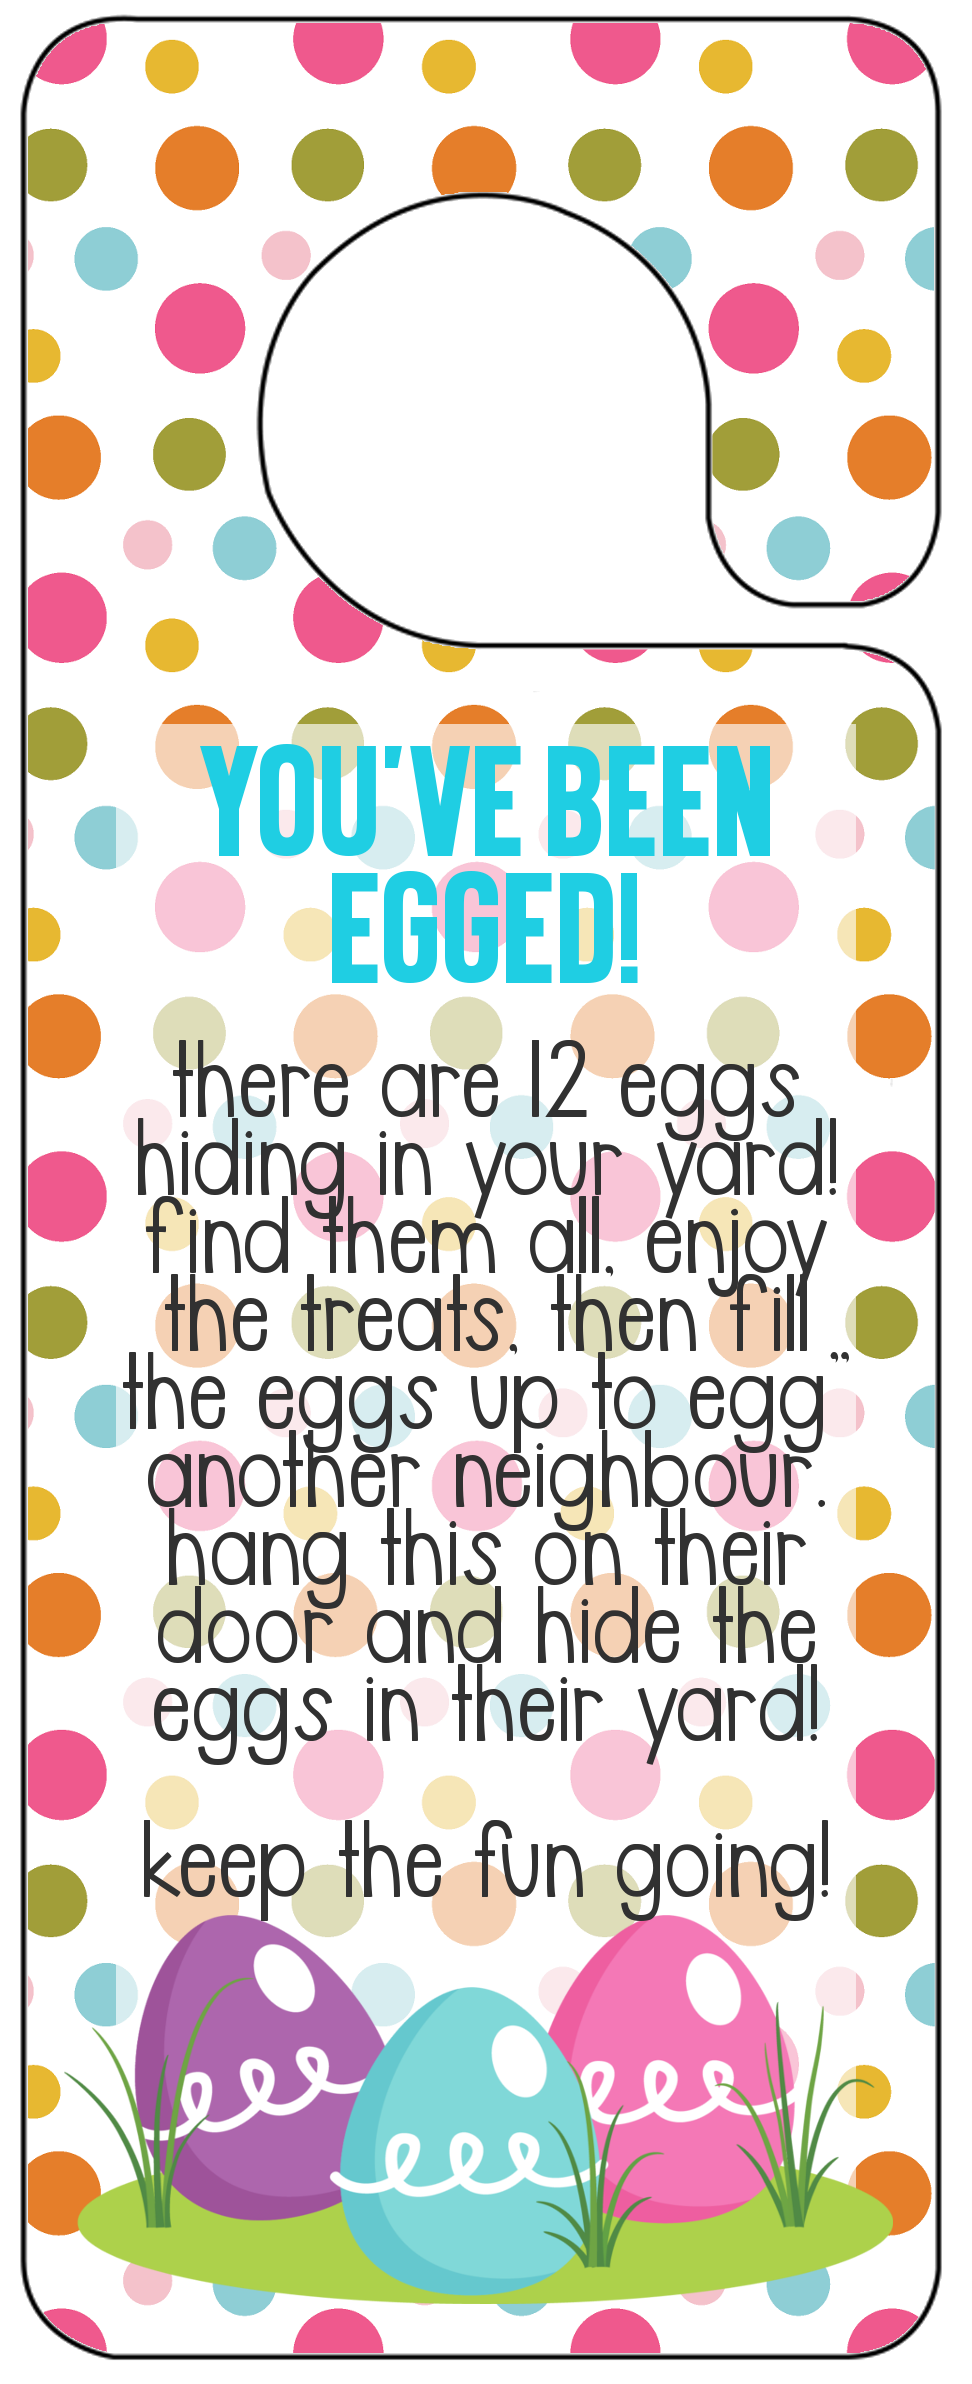 photo regarding You've Been Egged Printable identify Youve Been Egged Printable - The Simply just Built Everyday living